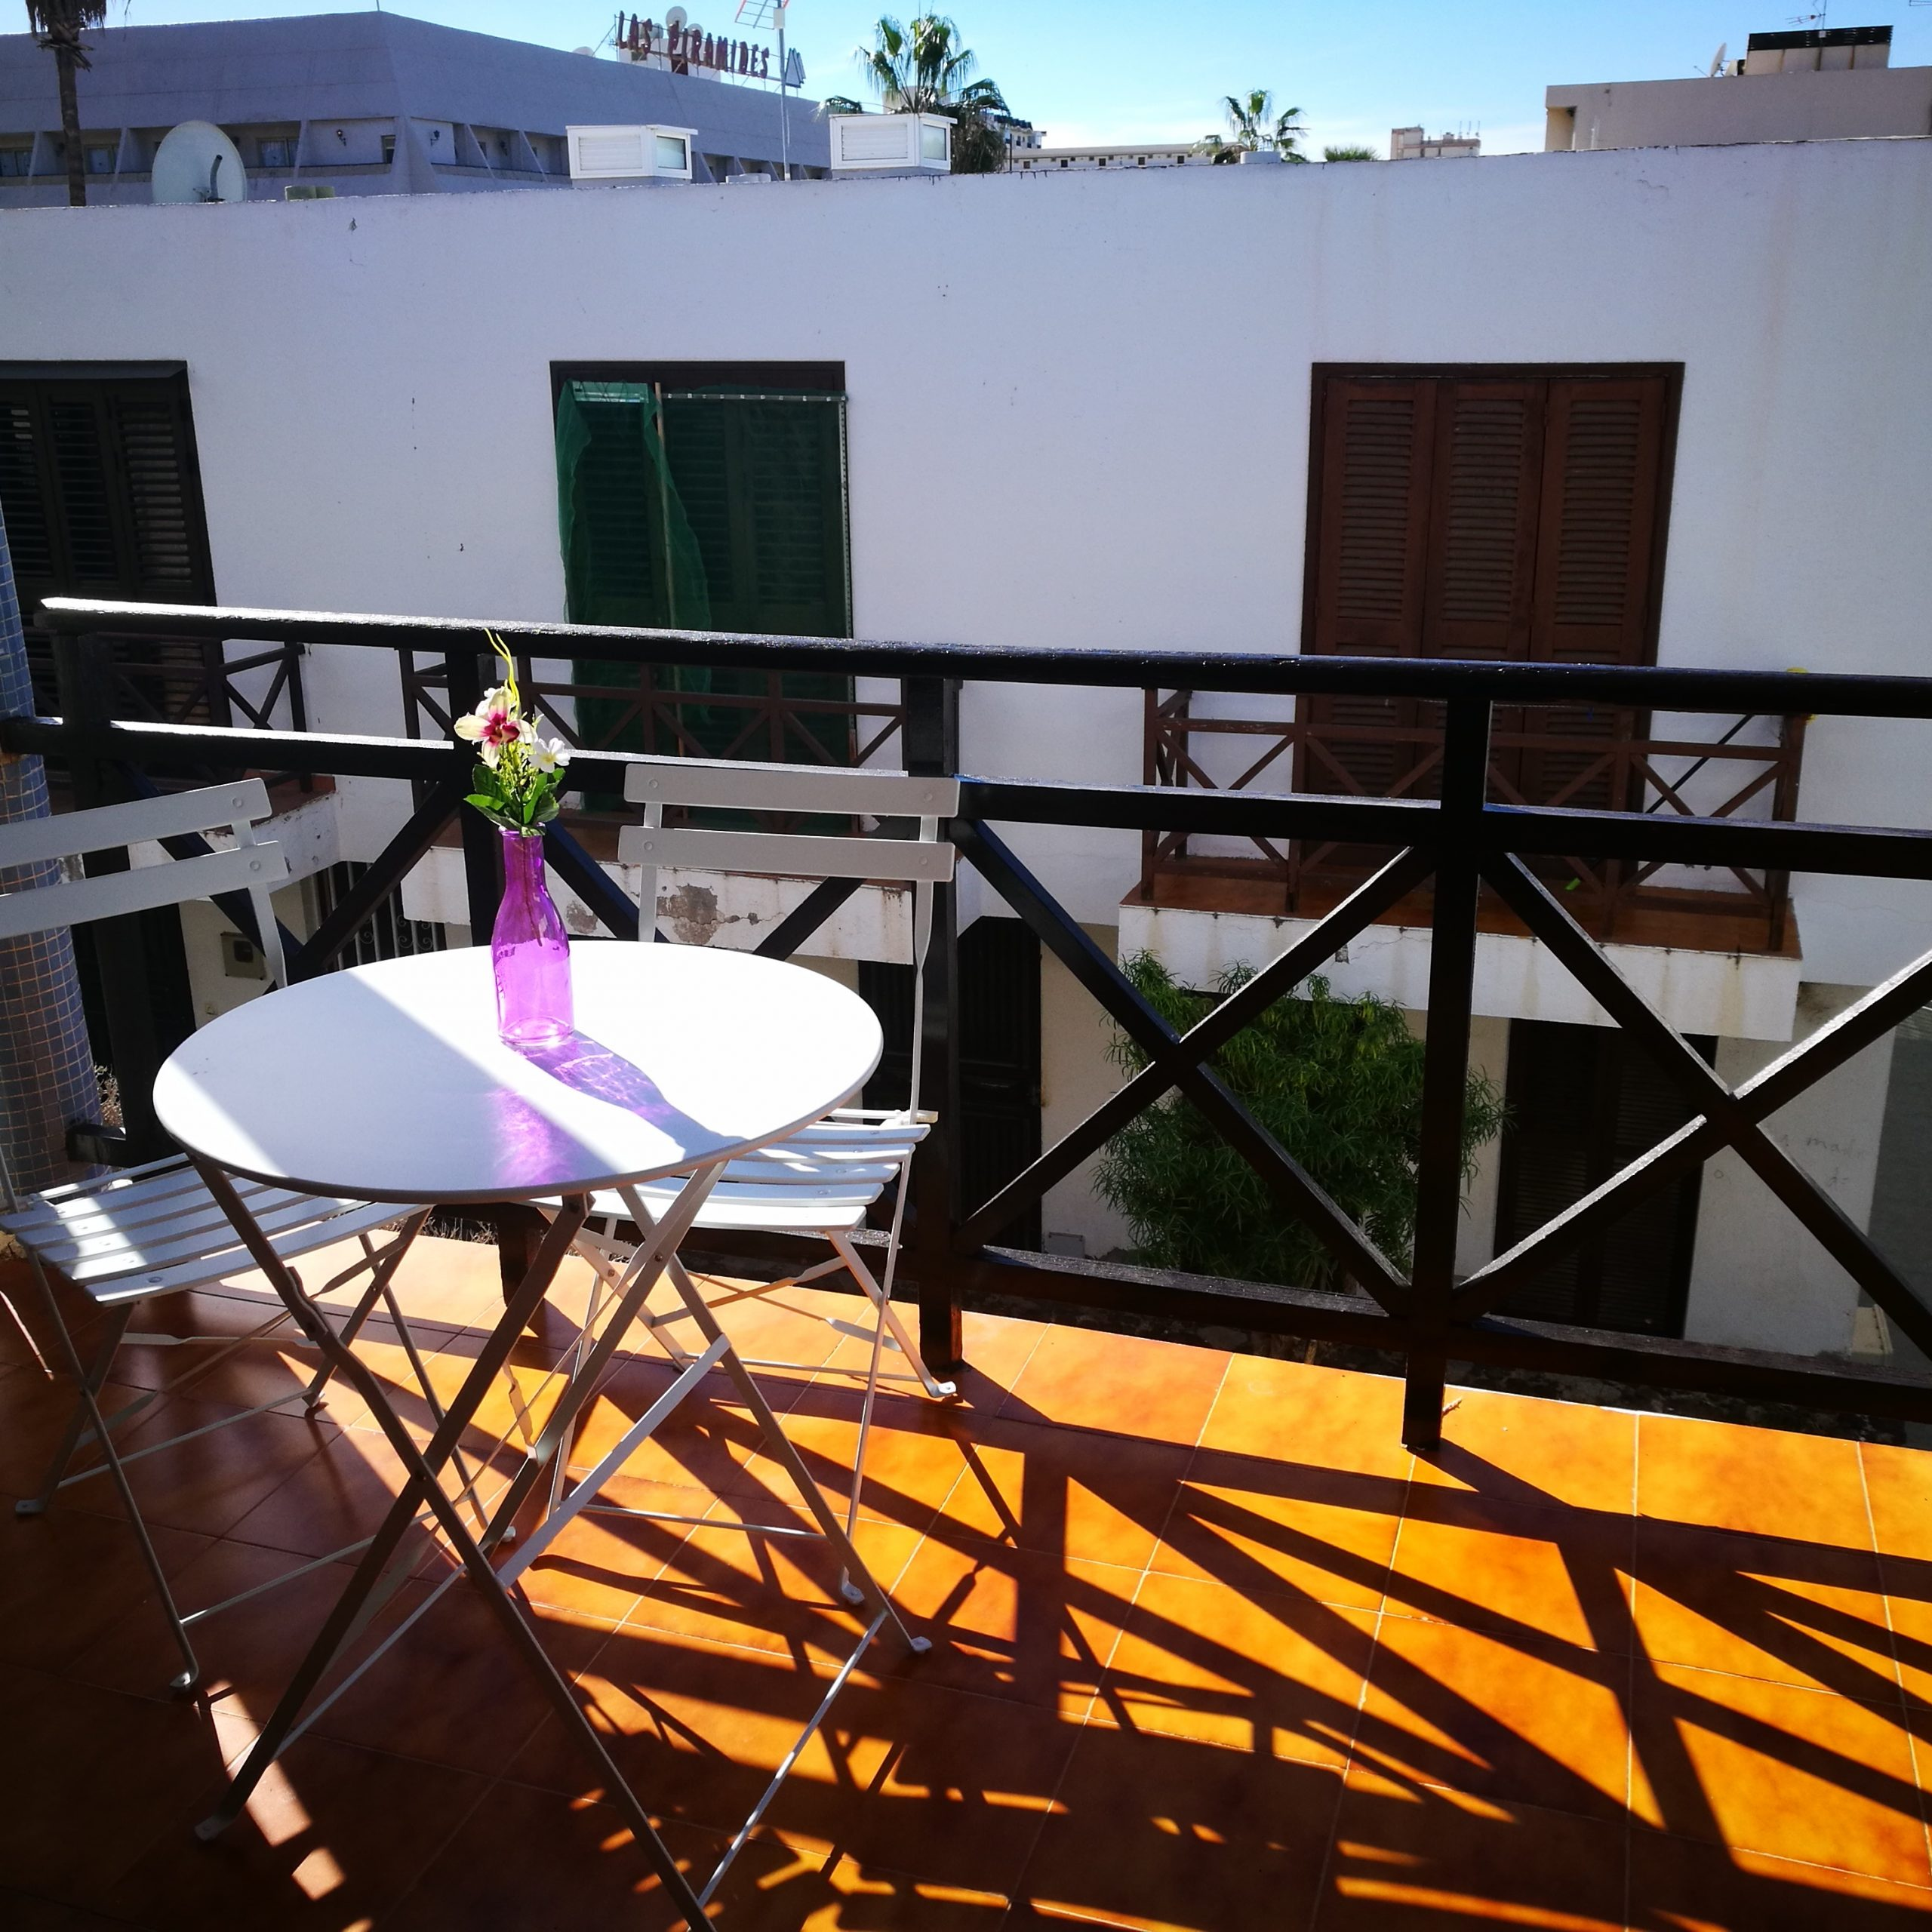 2 bedroom terrace house in Tenerife for expats